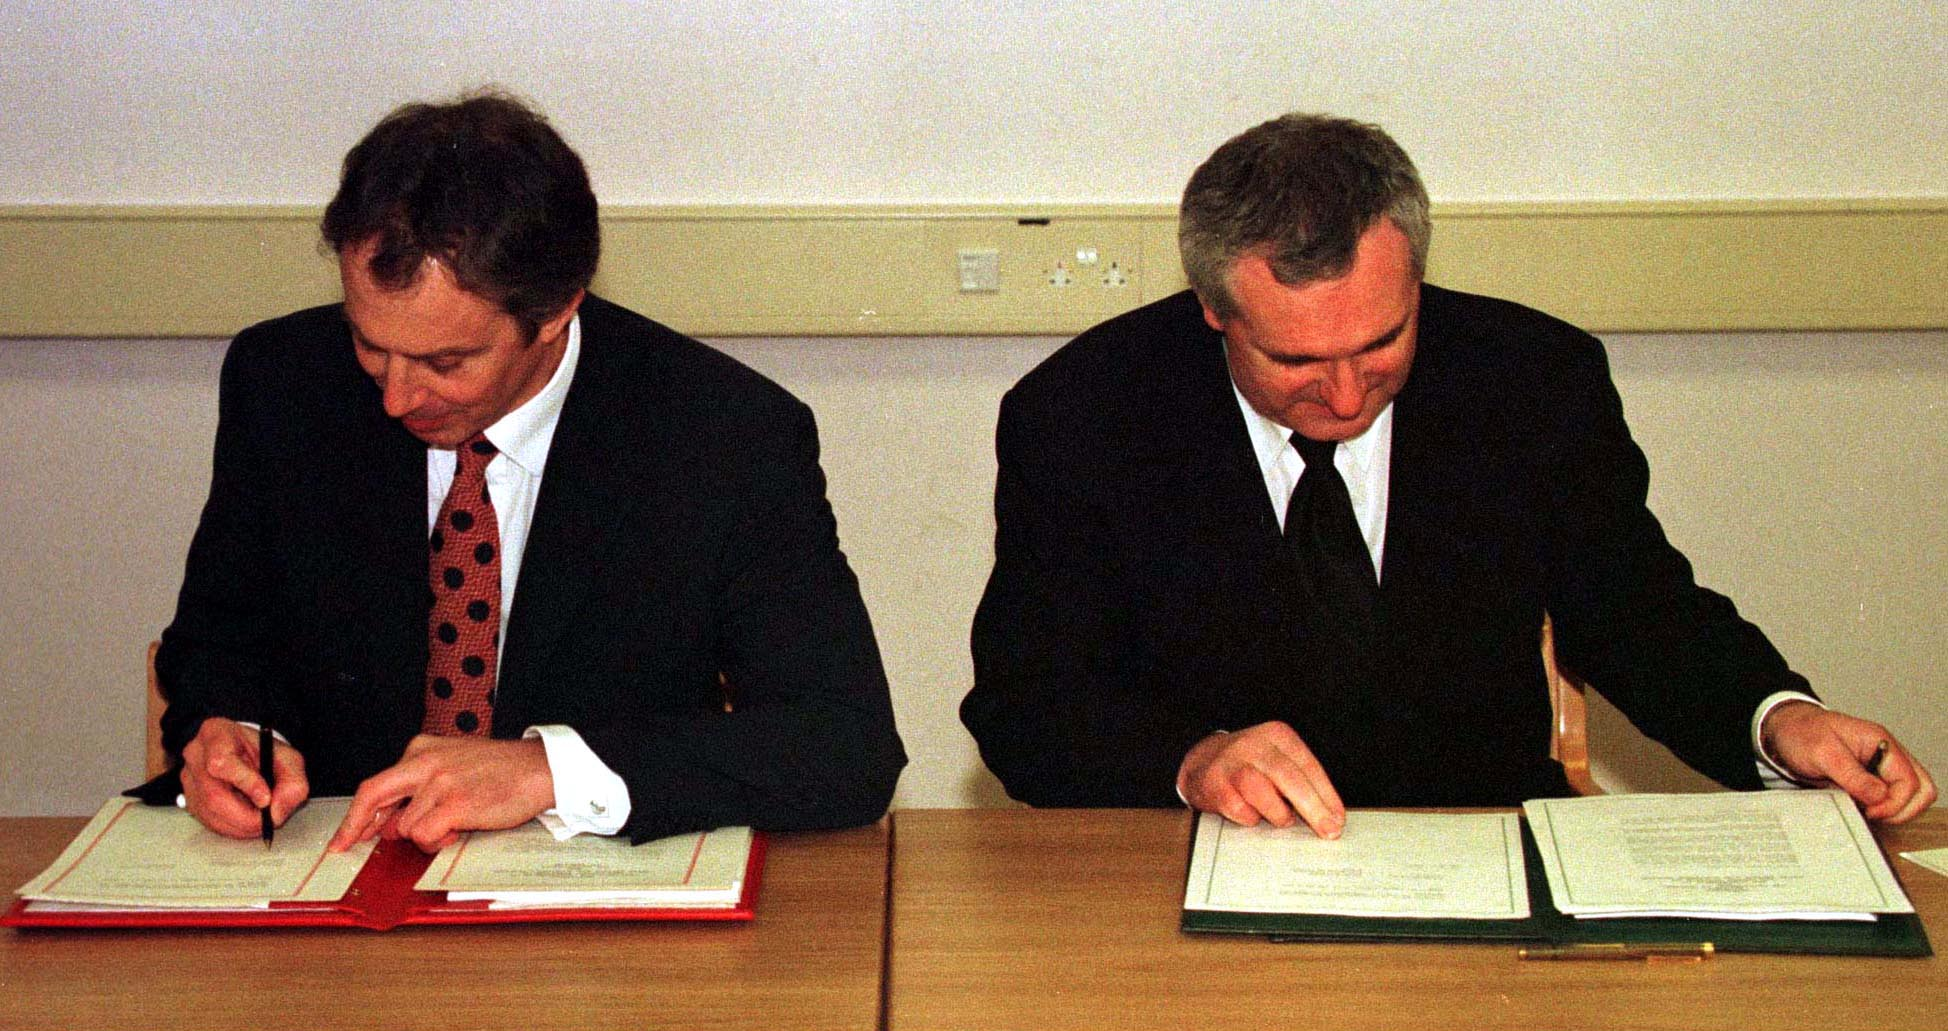 15 years ago today the good friday agreement was signed 15 years ago today the good friday agreement was signed thejournal platinumwayz